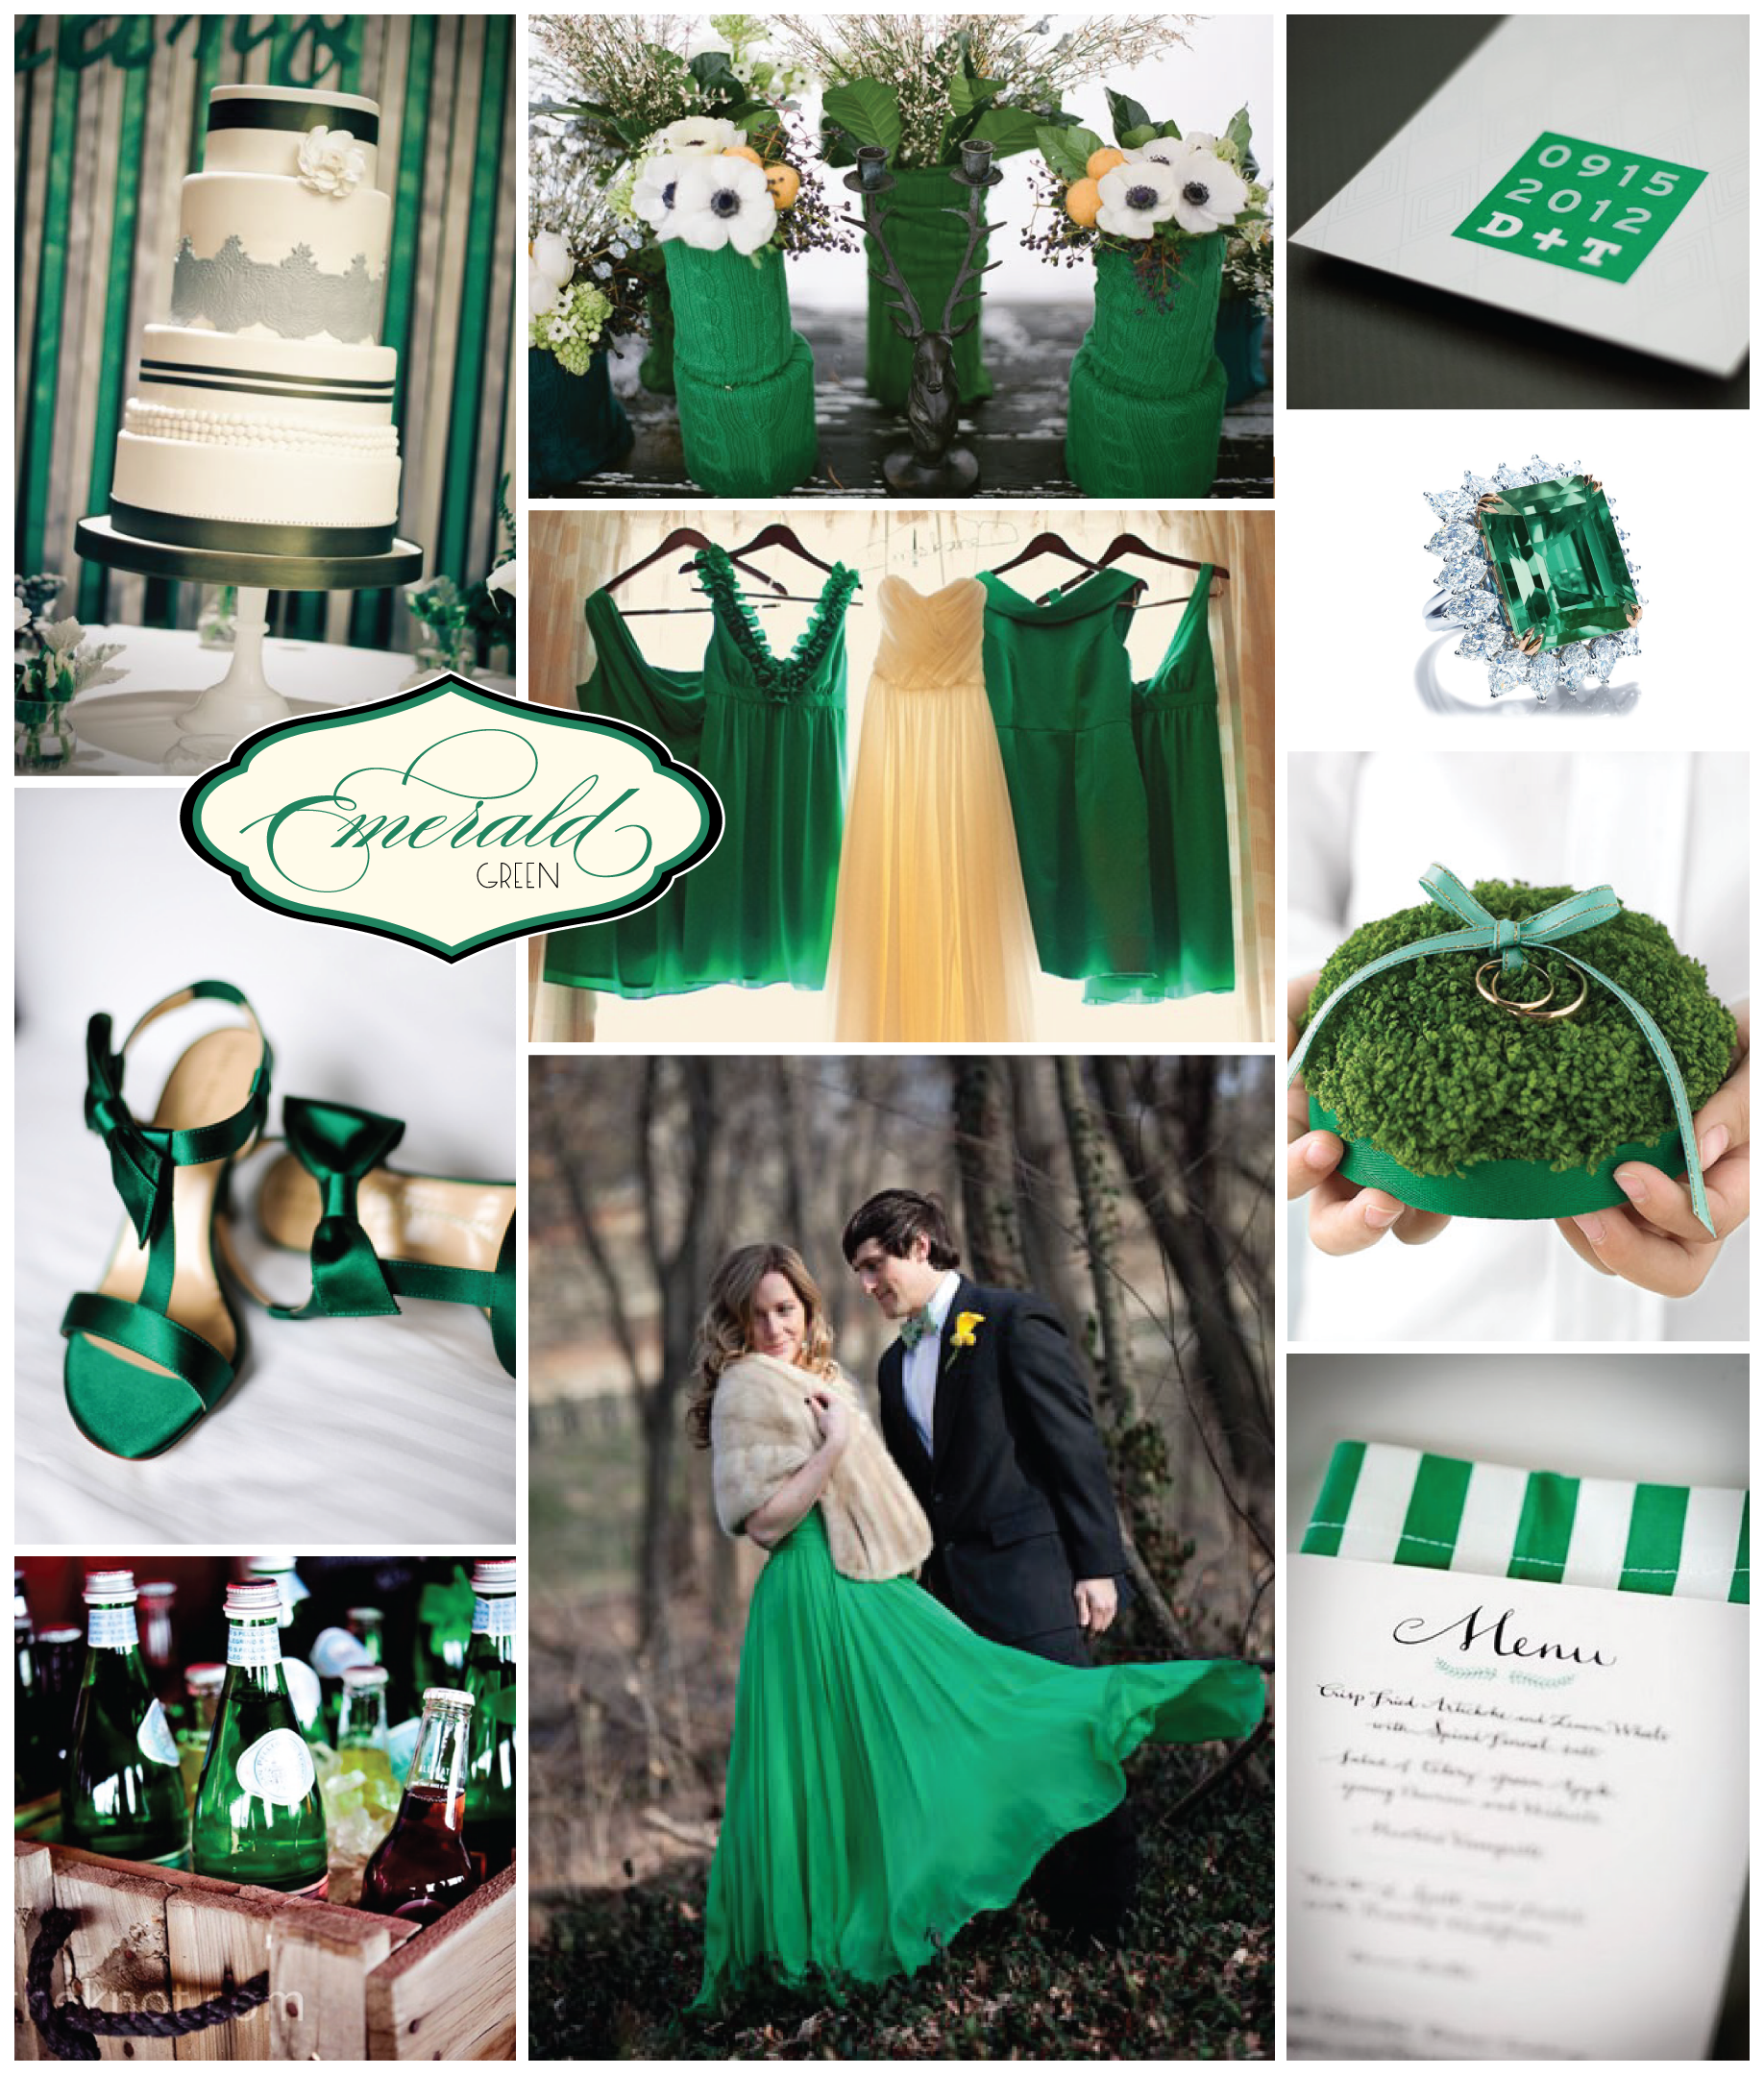 Pantone Announced The Color Of Year For 2013 Is Emerald Green